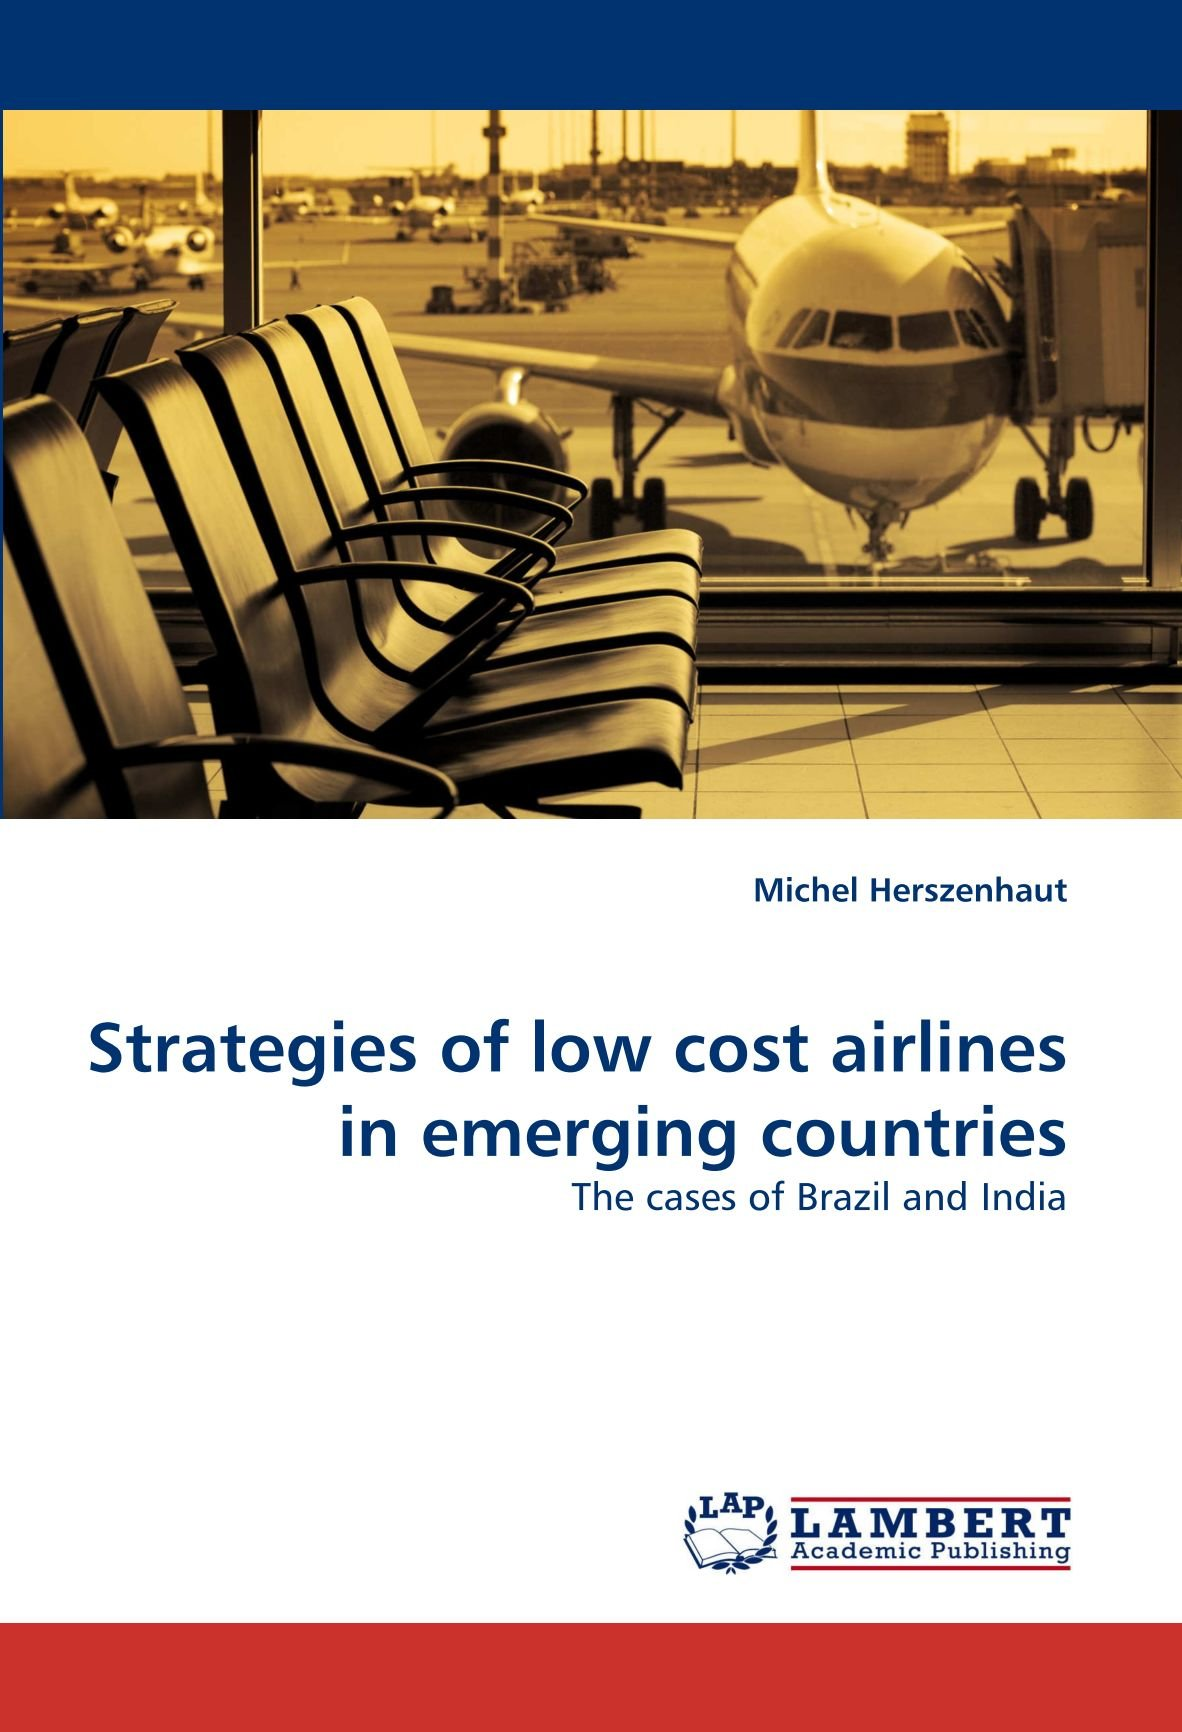 Strategies of low cost airlines in emerging countries: The cases of Brazil and India pdf